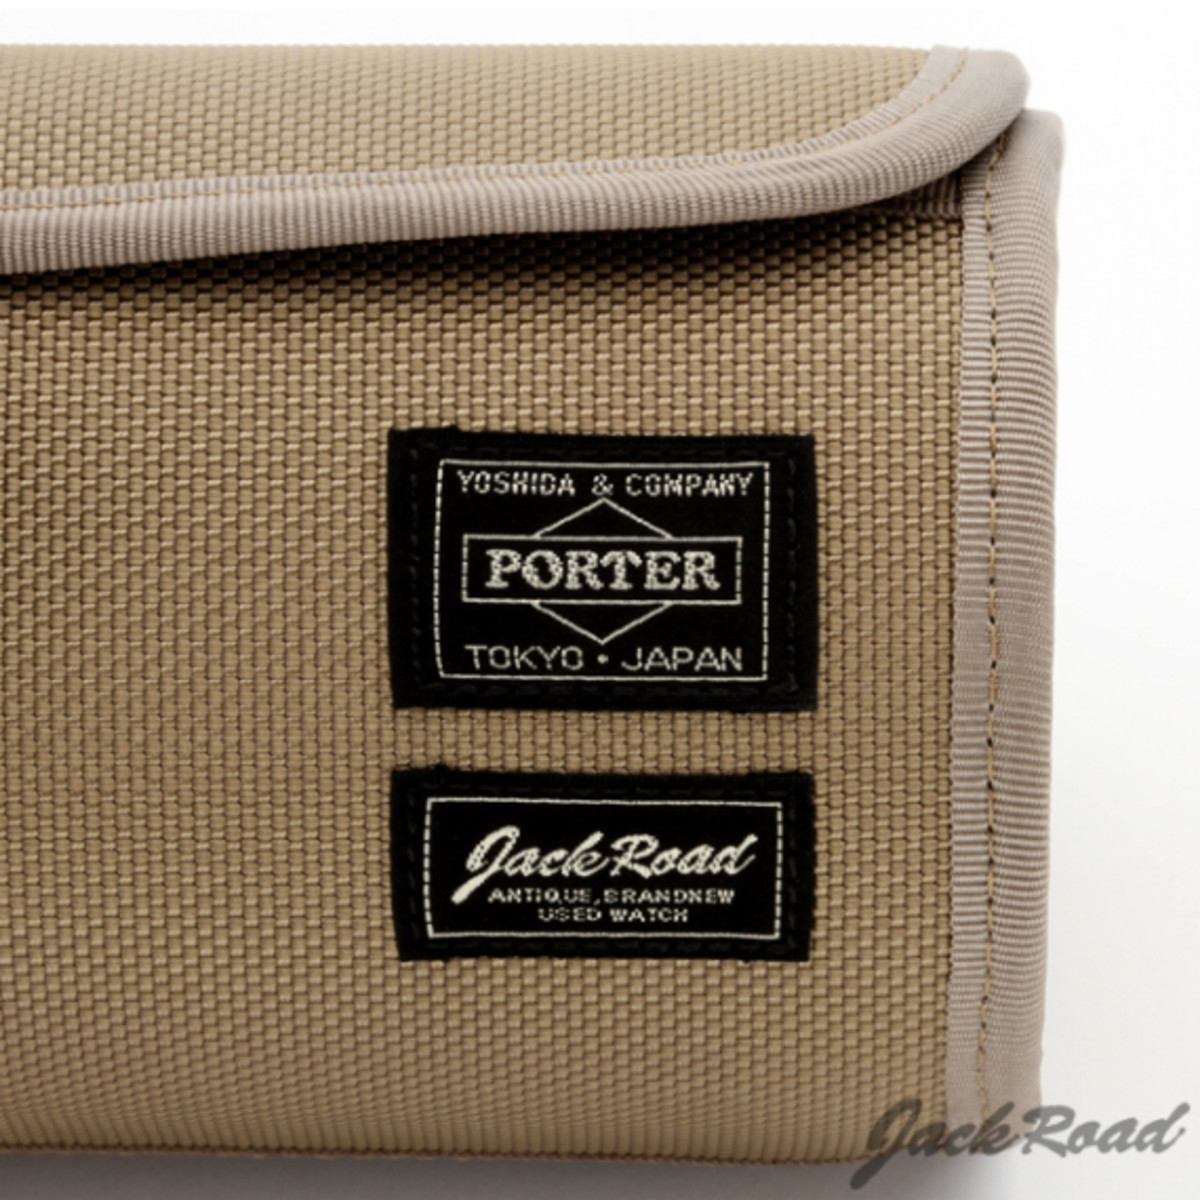 jack-road-porter-watch-carrying-case-17